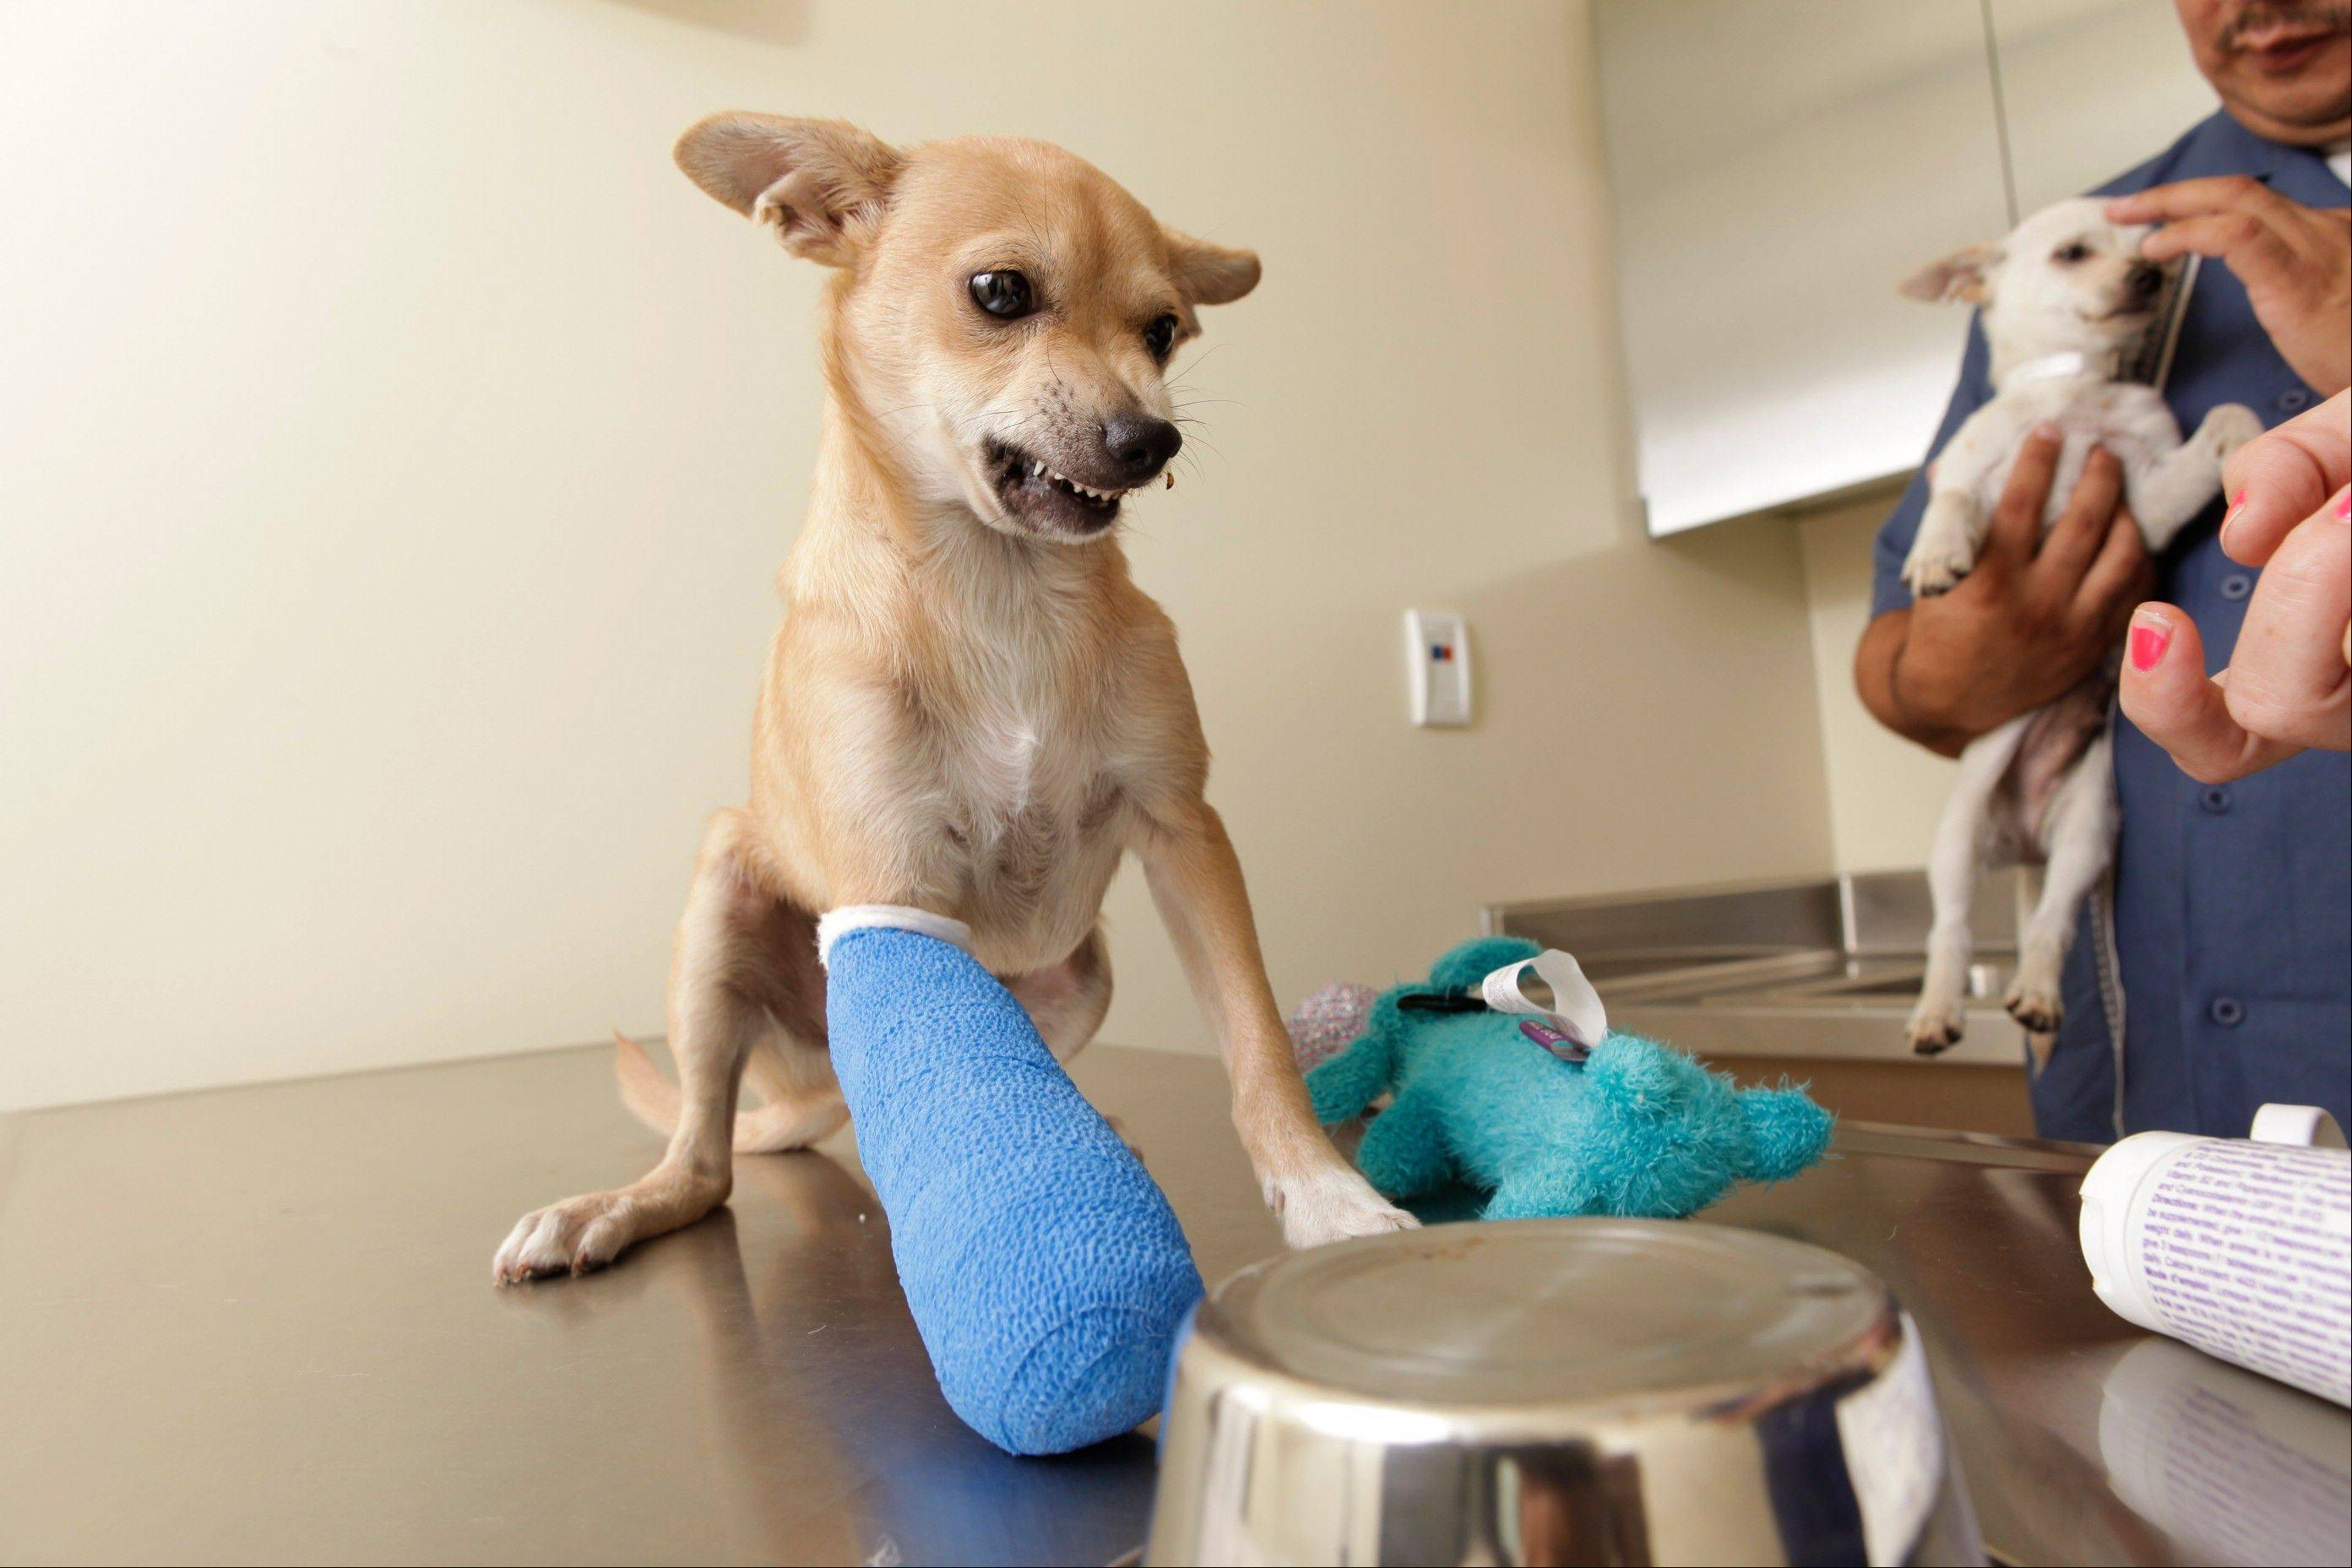 A Chihuahua shows frustration after the staff at the Los Angeles County Animal Care Control Carson Shelter placed a treat under a bowl to determine paw preference in Gardena, Calif. Results depend on which paw the dog uses to move the bowl.